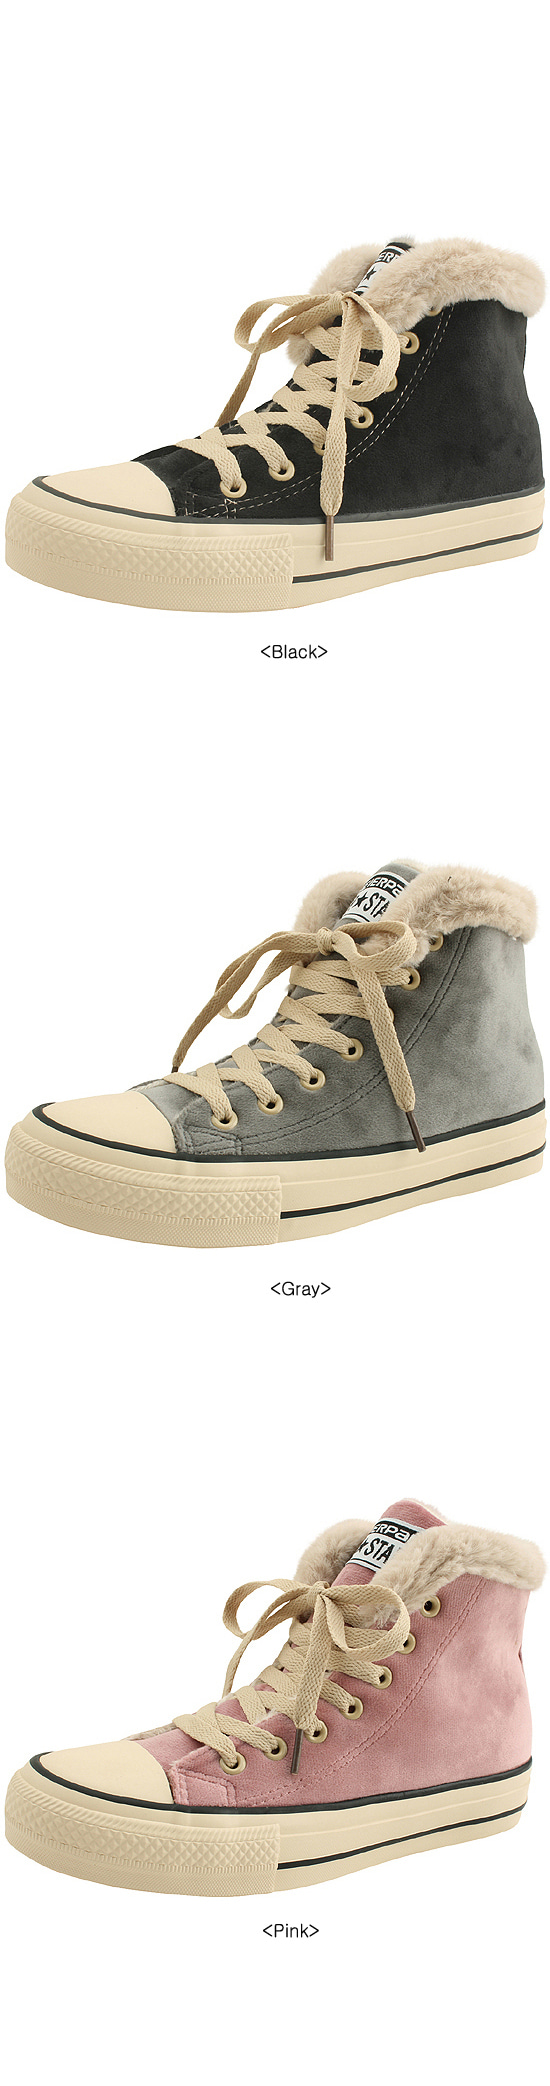 Canvas high-top fur sneakers pink